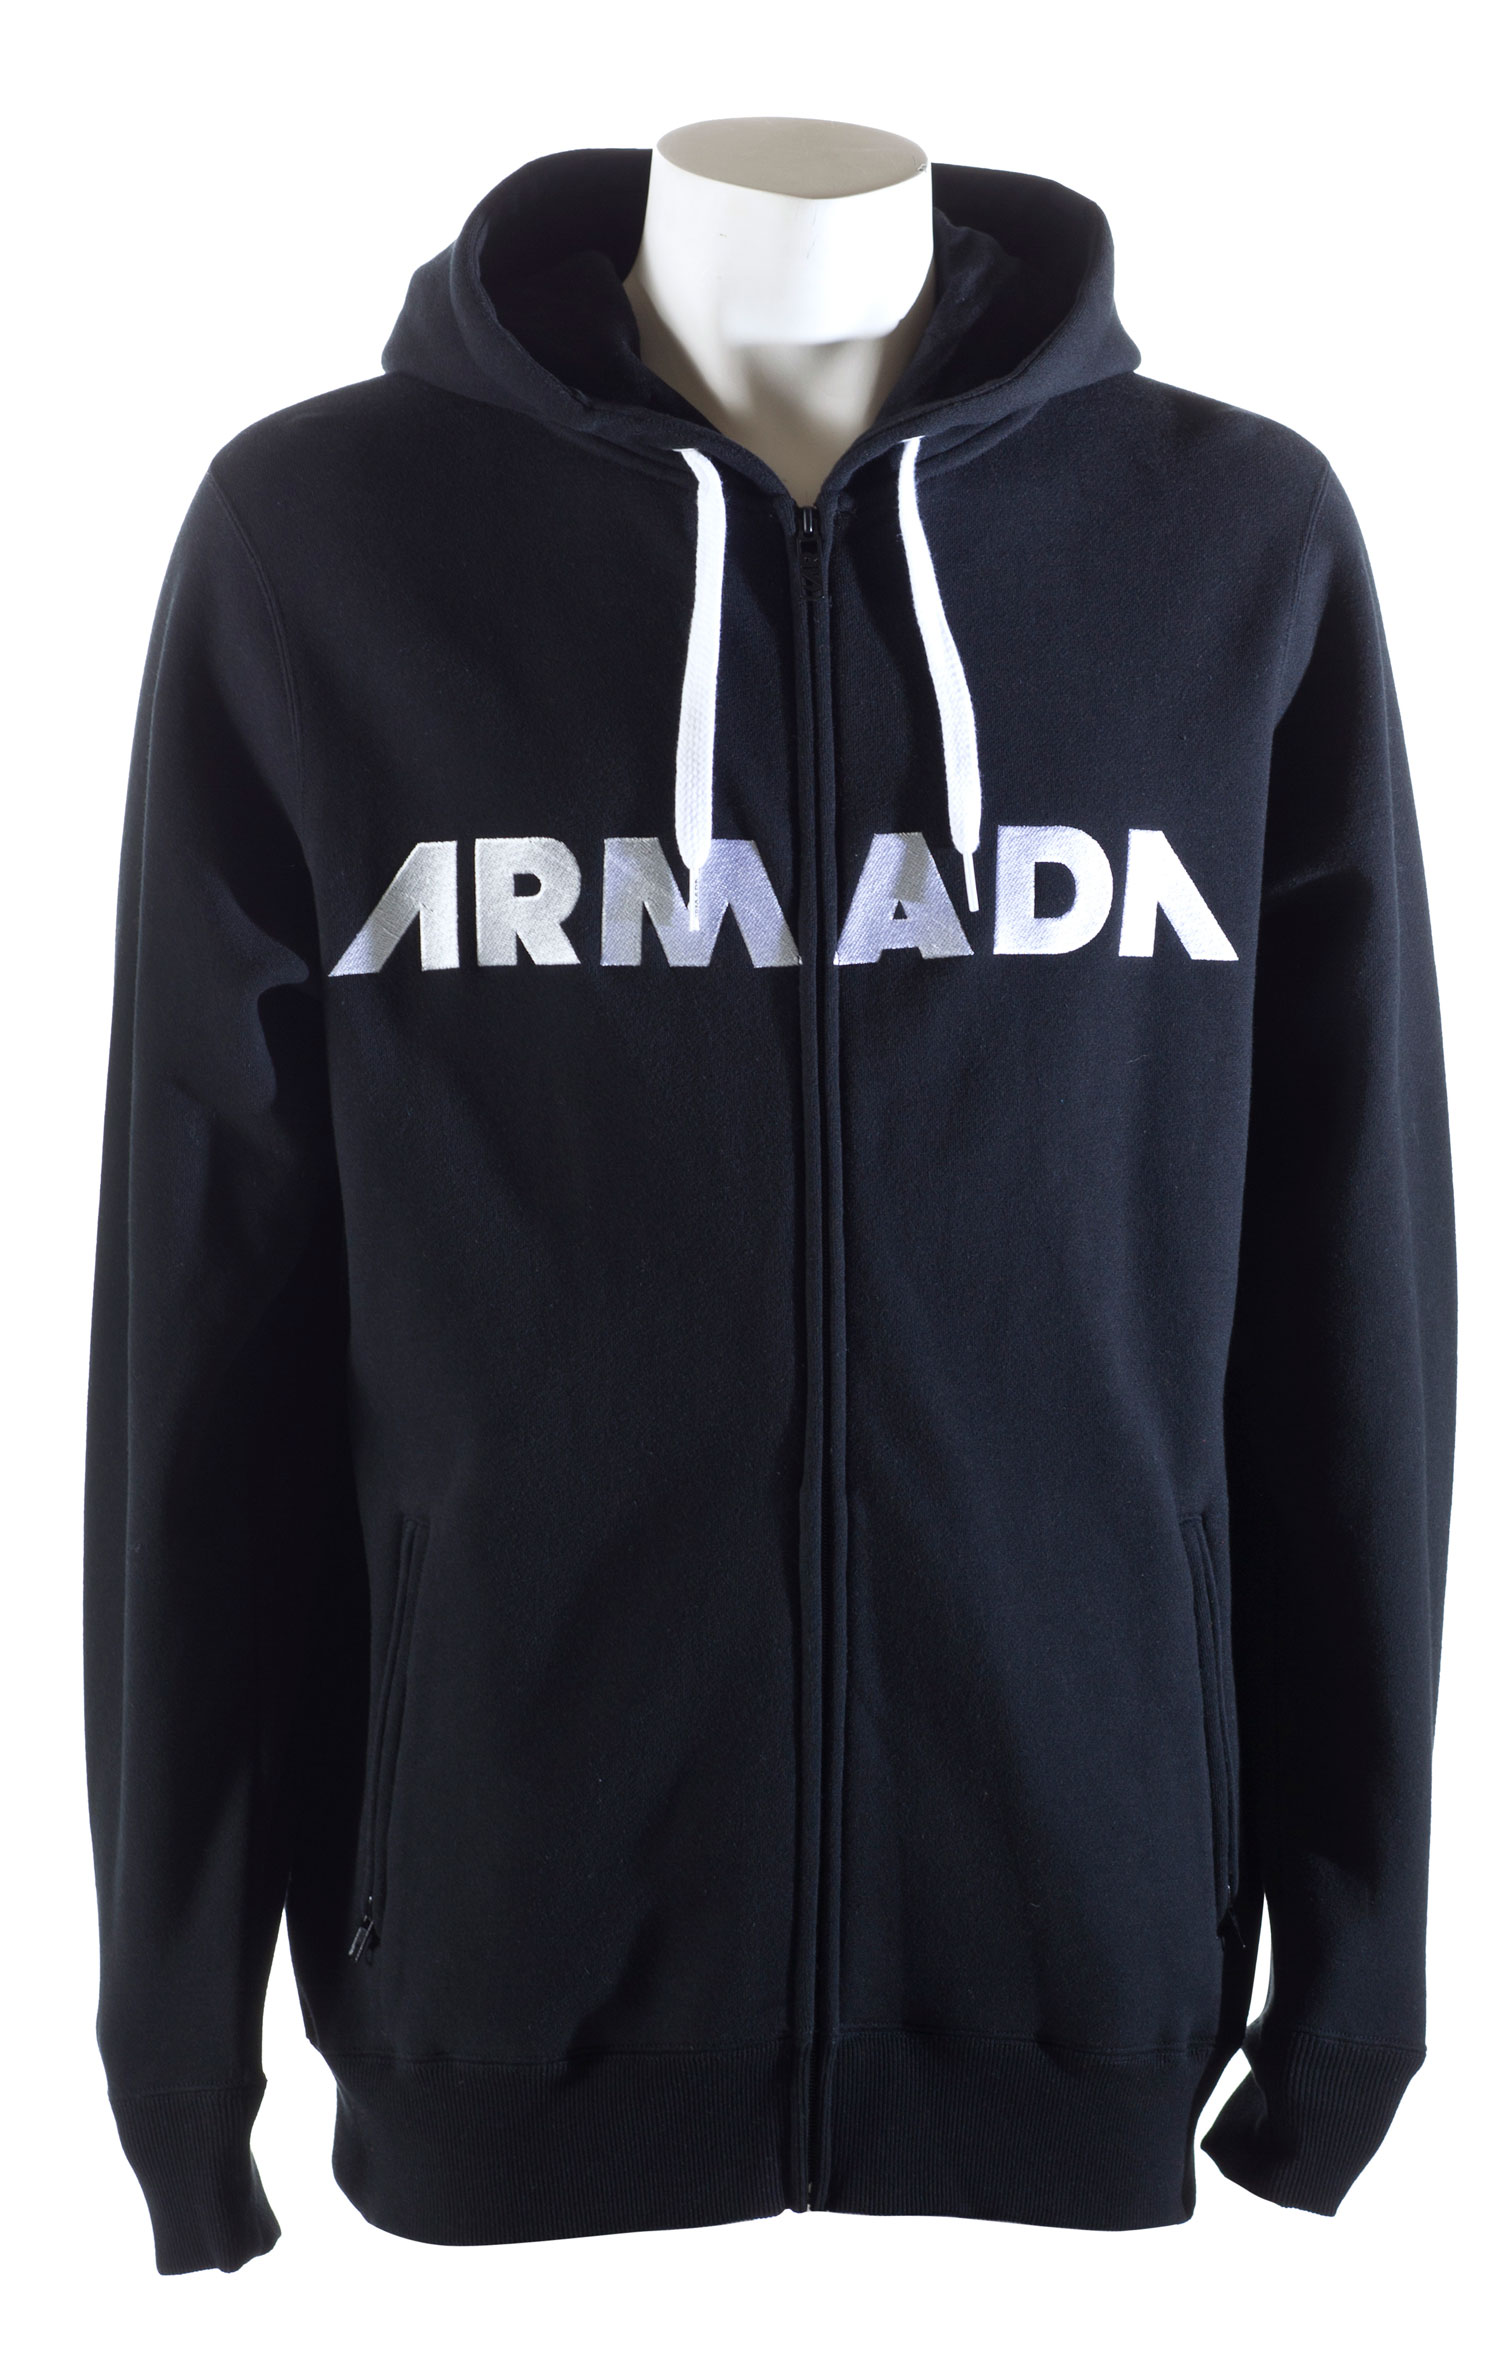 Ski The Armada Represent Fleece Hoodie is a new innovative fleece, that will have you warm in even the roughest weather. This hoodie is designed to withstand the coldest temperature and is the warmest of any hoodie on the market. The Armada Represent Hoodie is made from 360 grams of smooth standard fleece which is designed to keep the warmth in. This guarantees you the best quality material for your hoodie. This material also allows you to wear it in non-chilling weather without getting too hot. The nice thing about this hoodie is the pockets on the side. These are designed to keep your hands very warm during cold weather but also have a zip which you can zip up if the pockets aren''t needed. This is by far the best hoodie on the market!Key Features of the Armada Represent Fleece Hoodie:  Standard Fleece 360g  Full zip  Adjustable hood  Hand-warmer pocket with zipper - $35.95